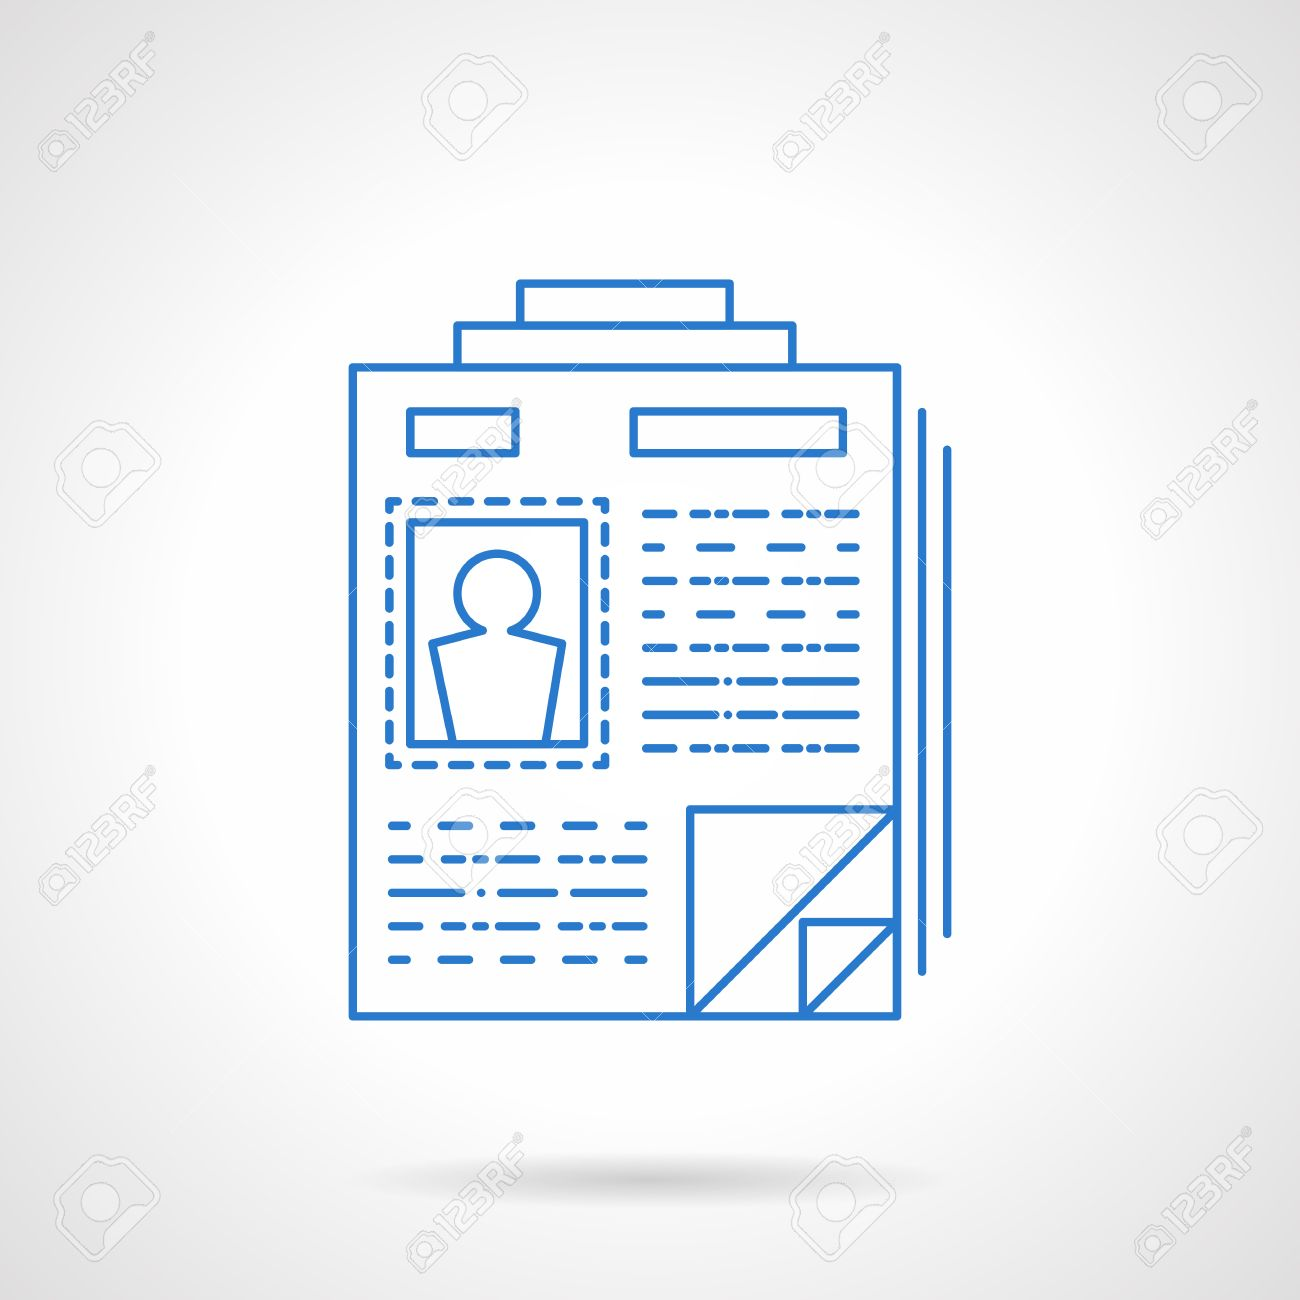 Personnel Resume Headhunting Symbol Document With Personal